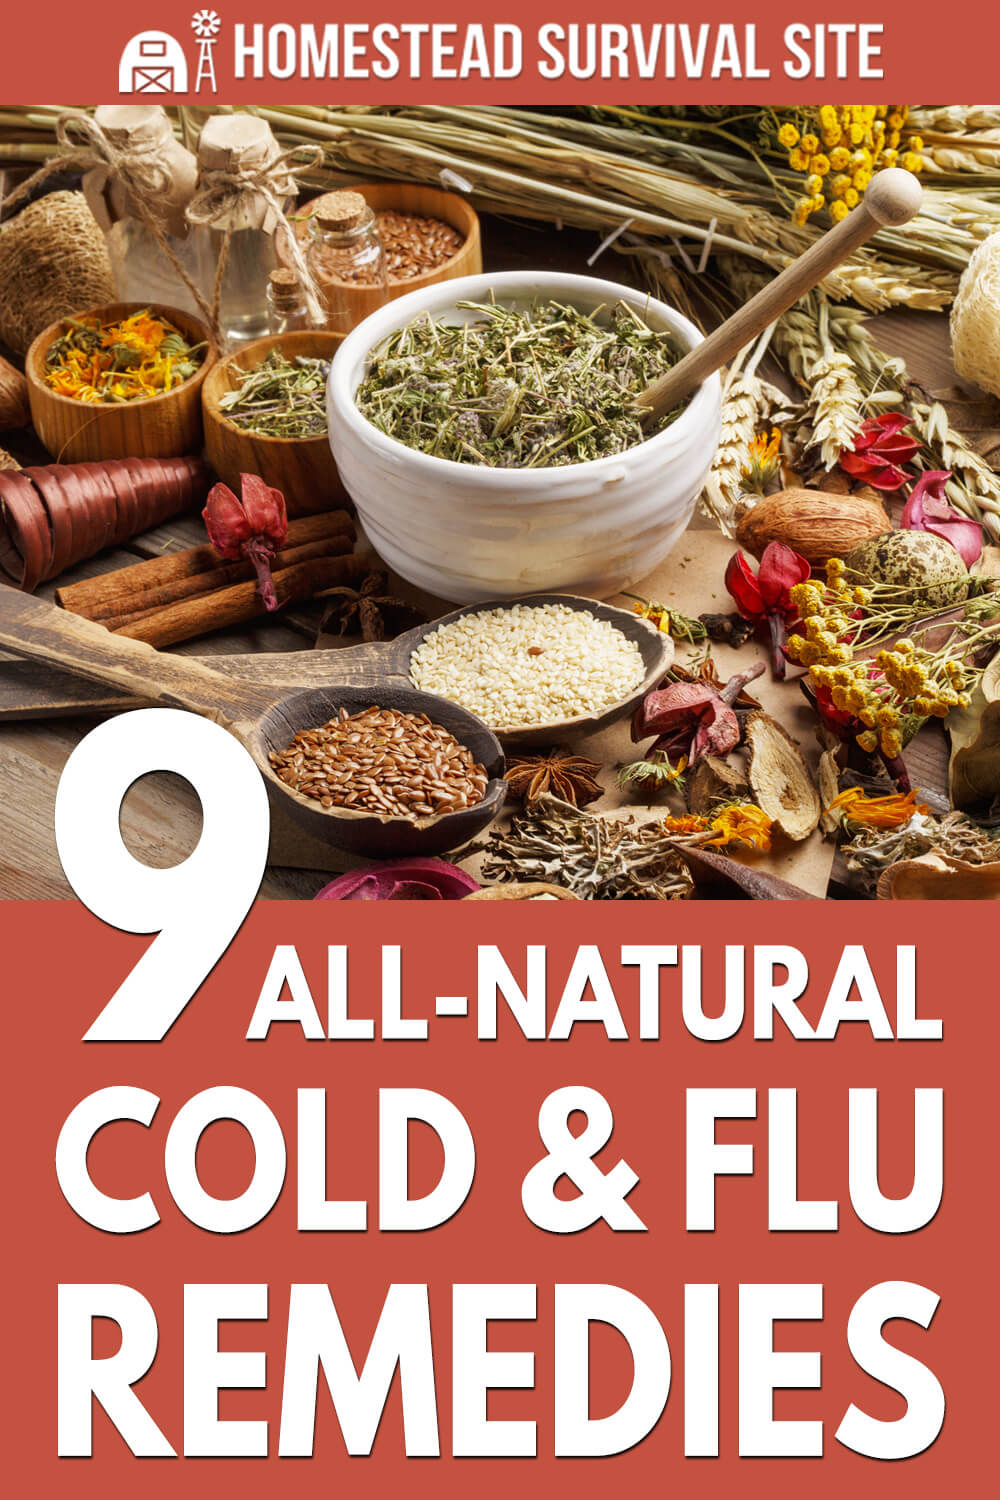 9 All-Natural Cold & Flu Remedies